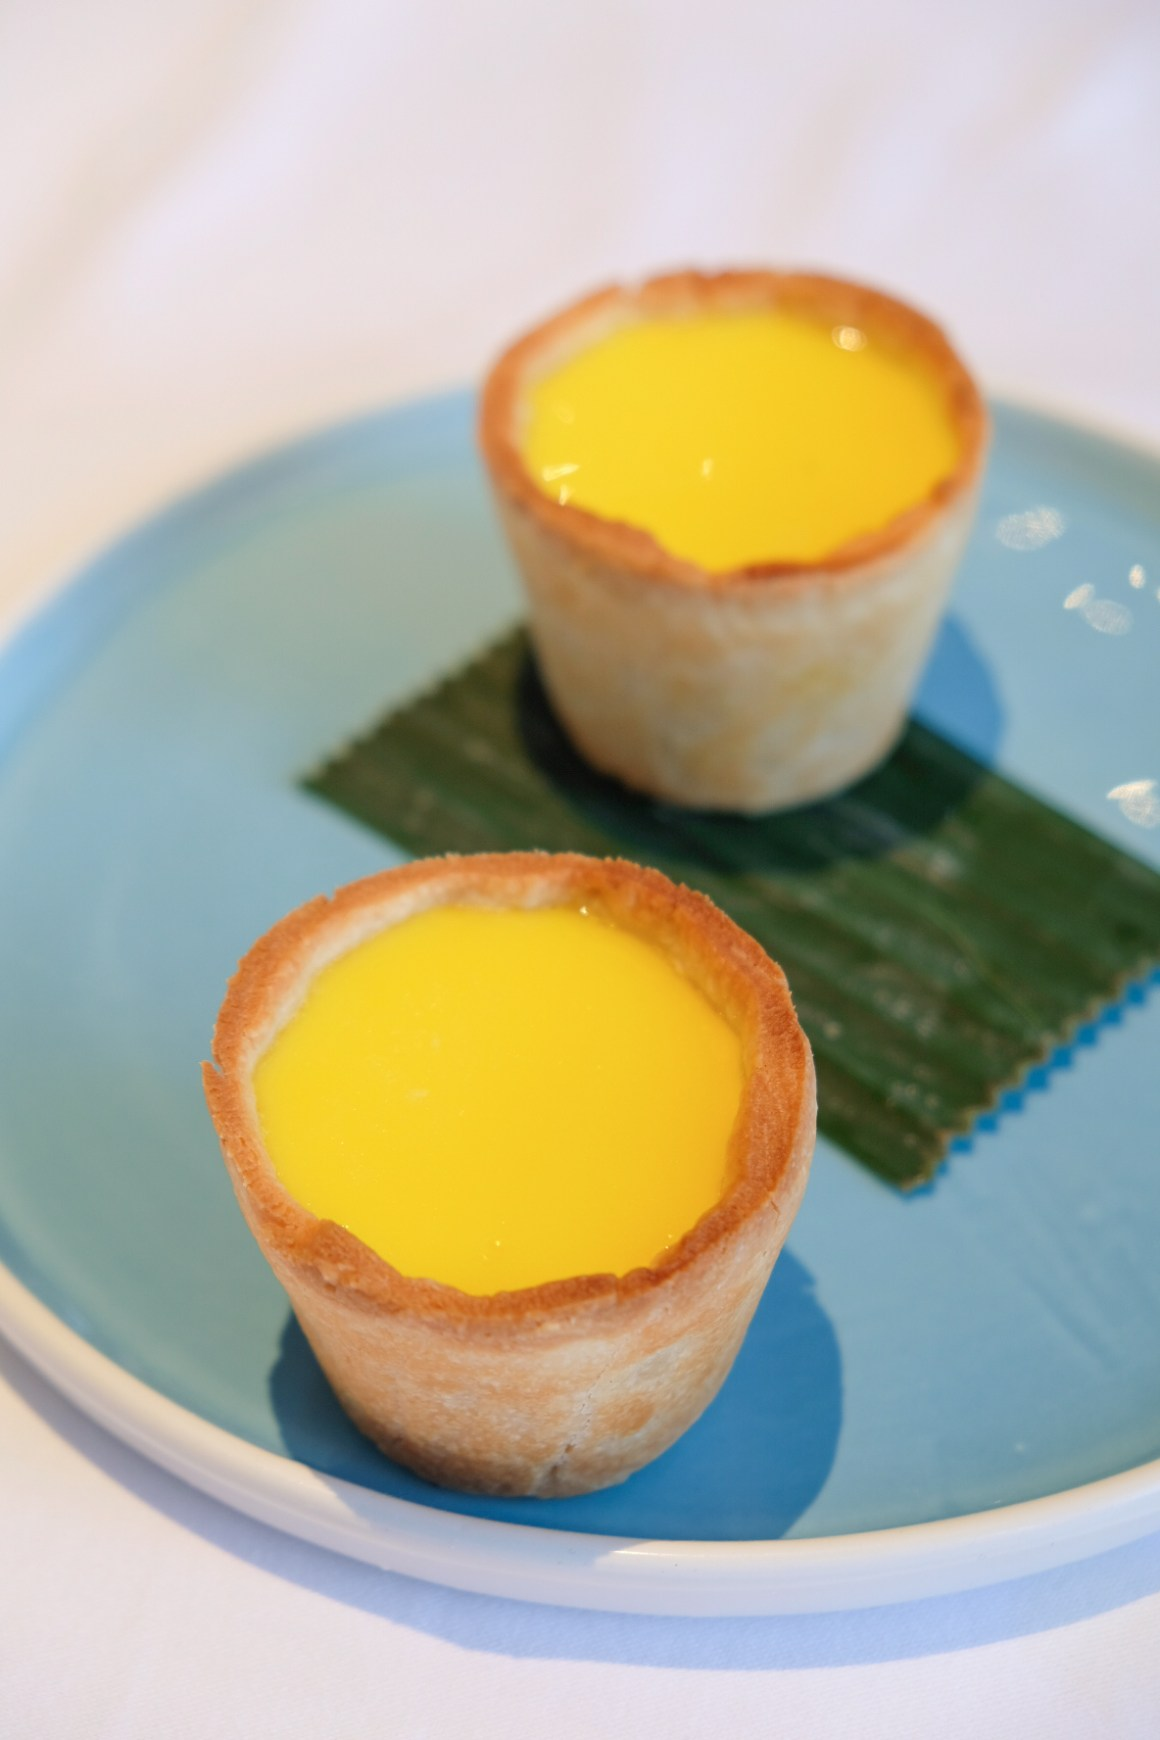 Forbidden Duck Singapore By 3 Michelin Stars Chef Alvin Leung - Giant Egg Tart 巨人柚子蛋撻 ($6/2pcs)